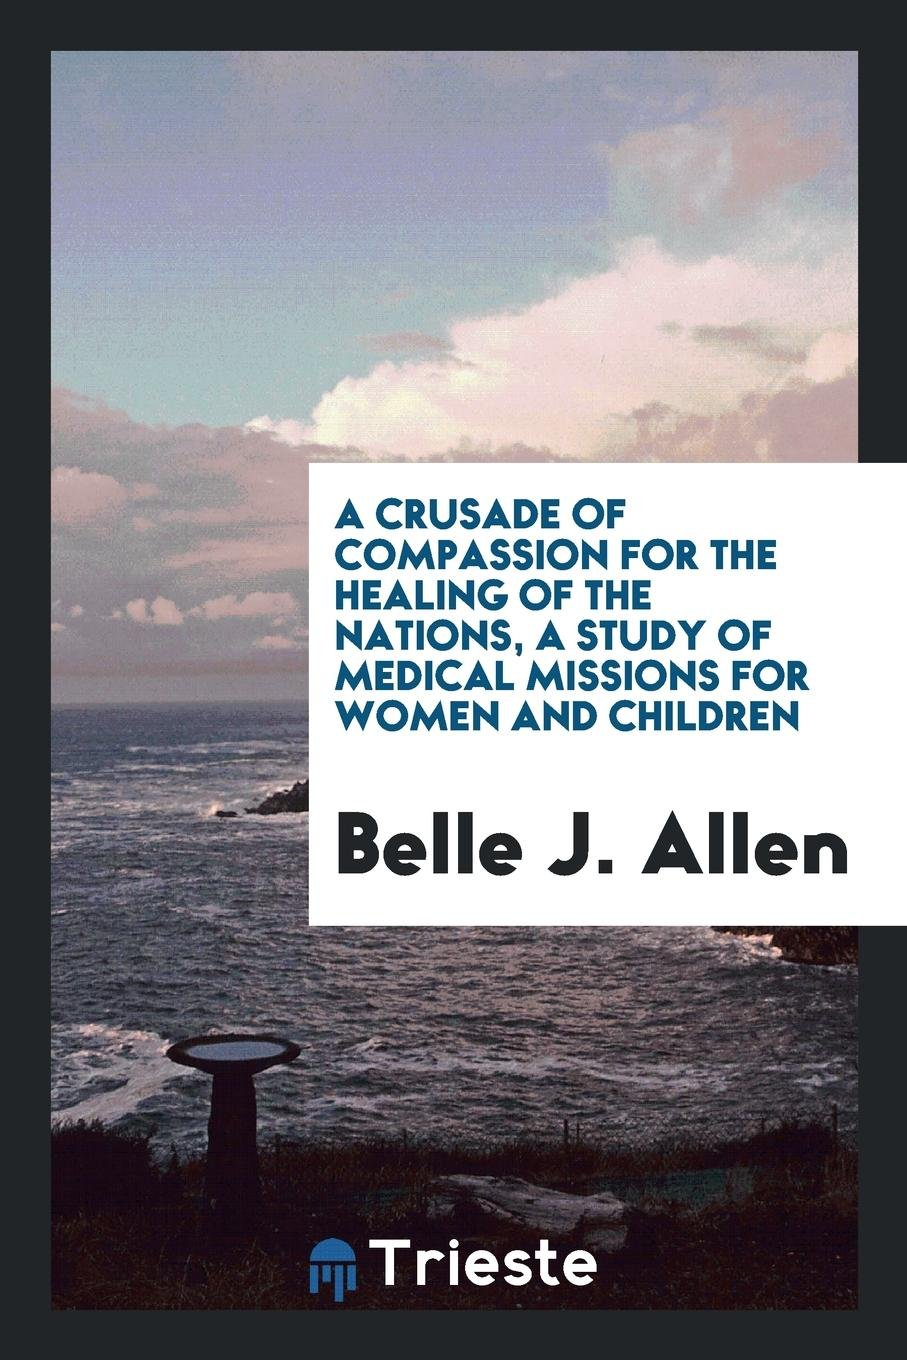 Download A Crusade of Compassion for the Healing of the Nations, a Study of Medical Missions for Women and Children PDF